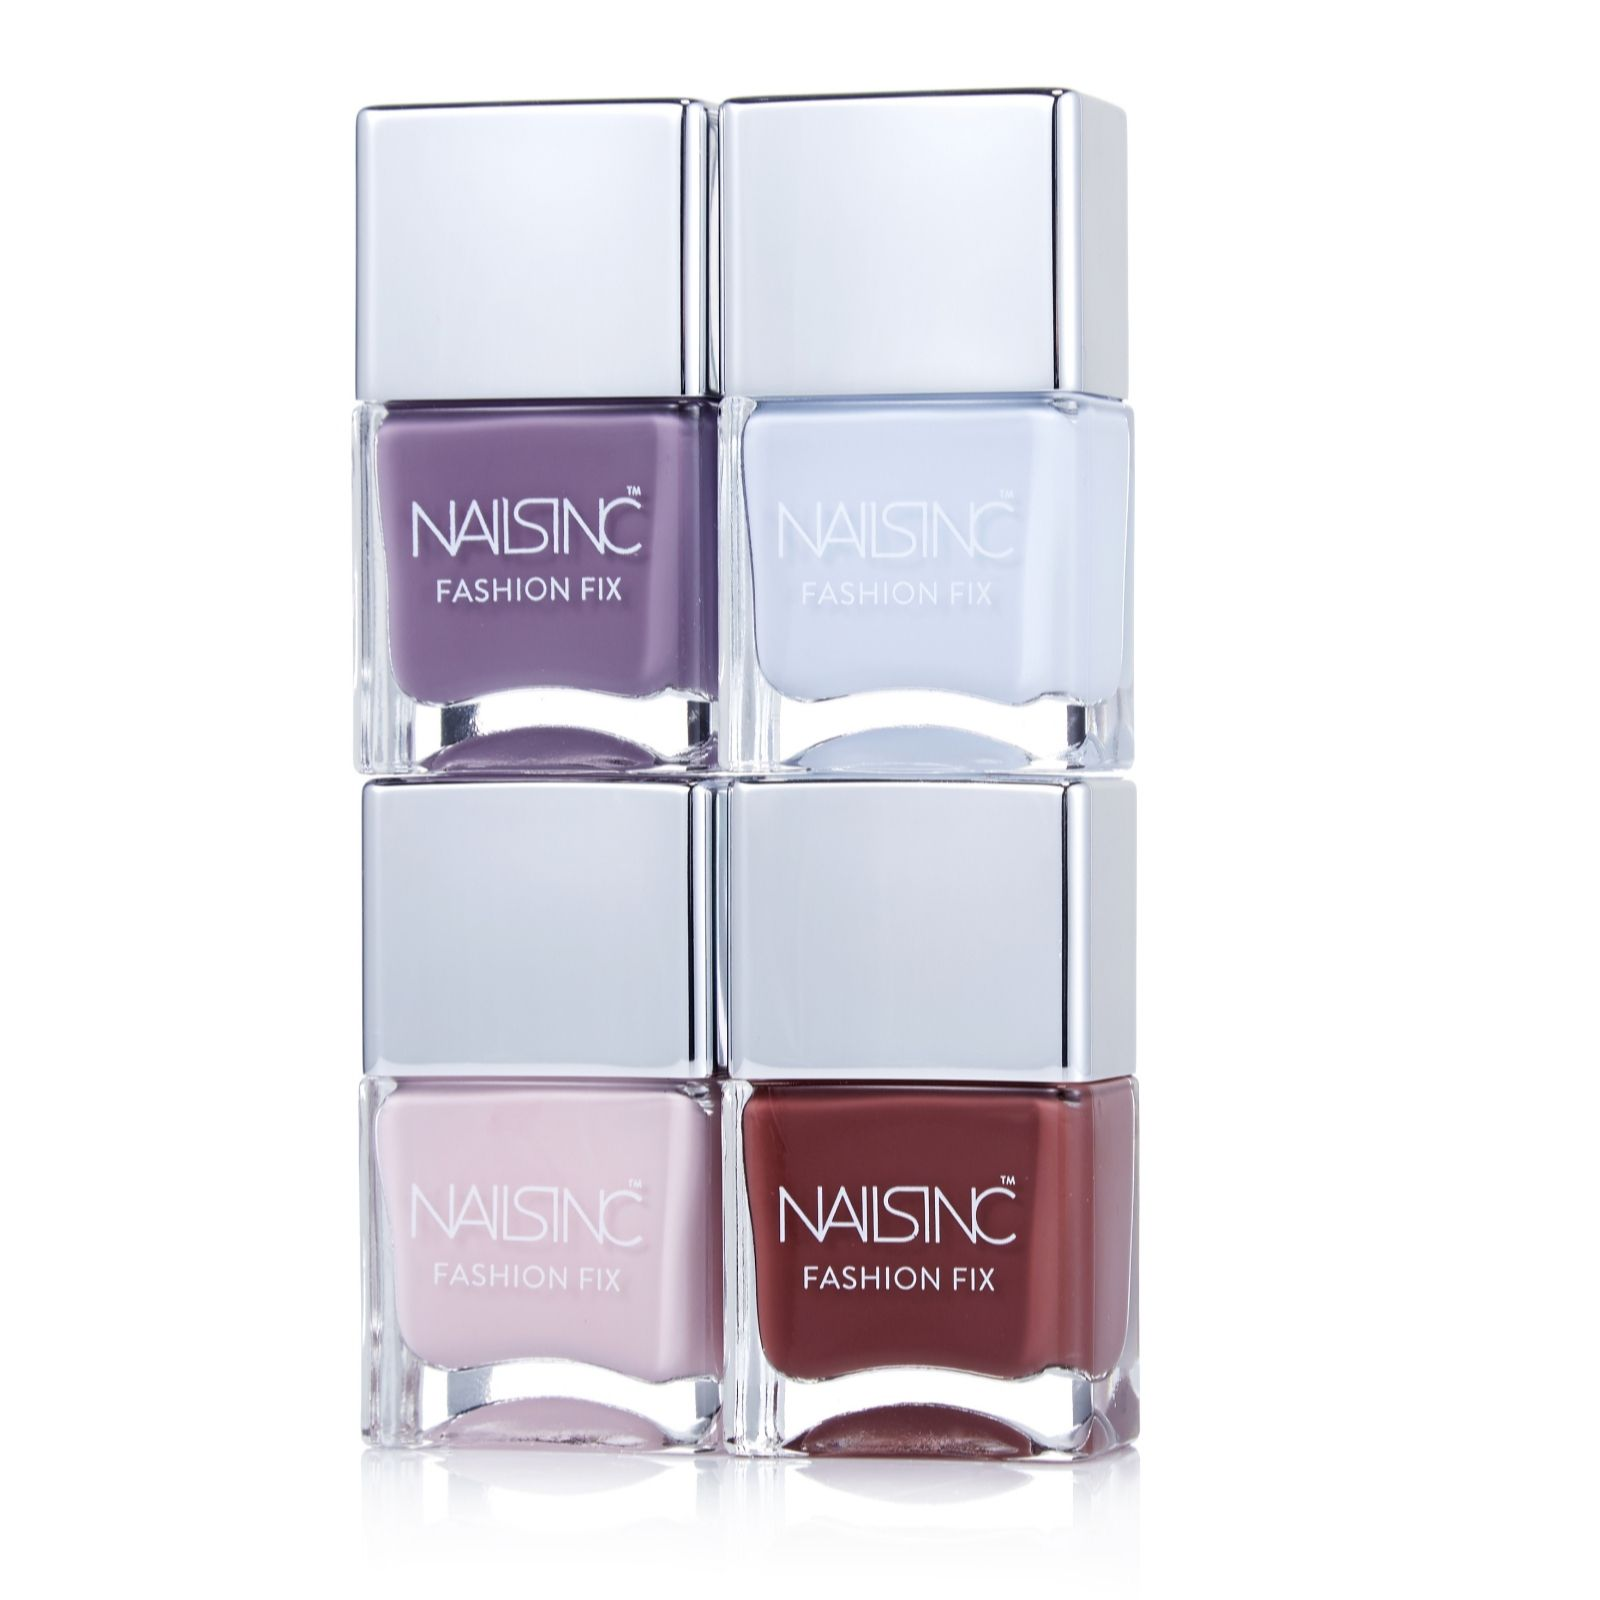 Nails Inc 4 Piece Fashion Fix Collection - QVC UK